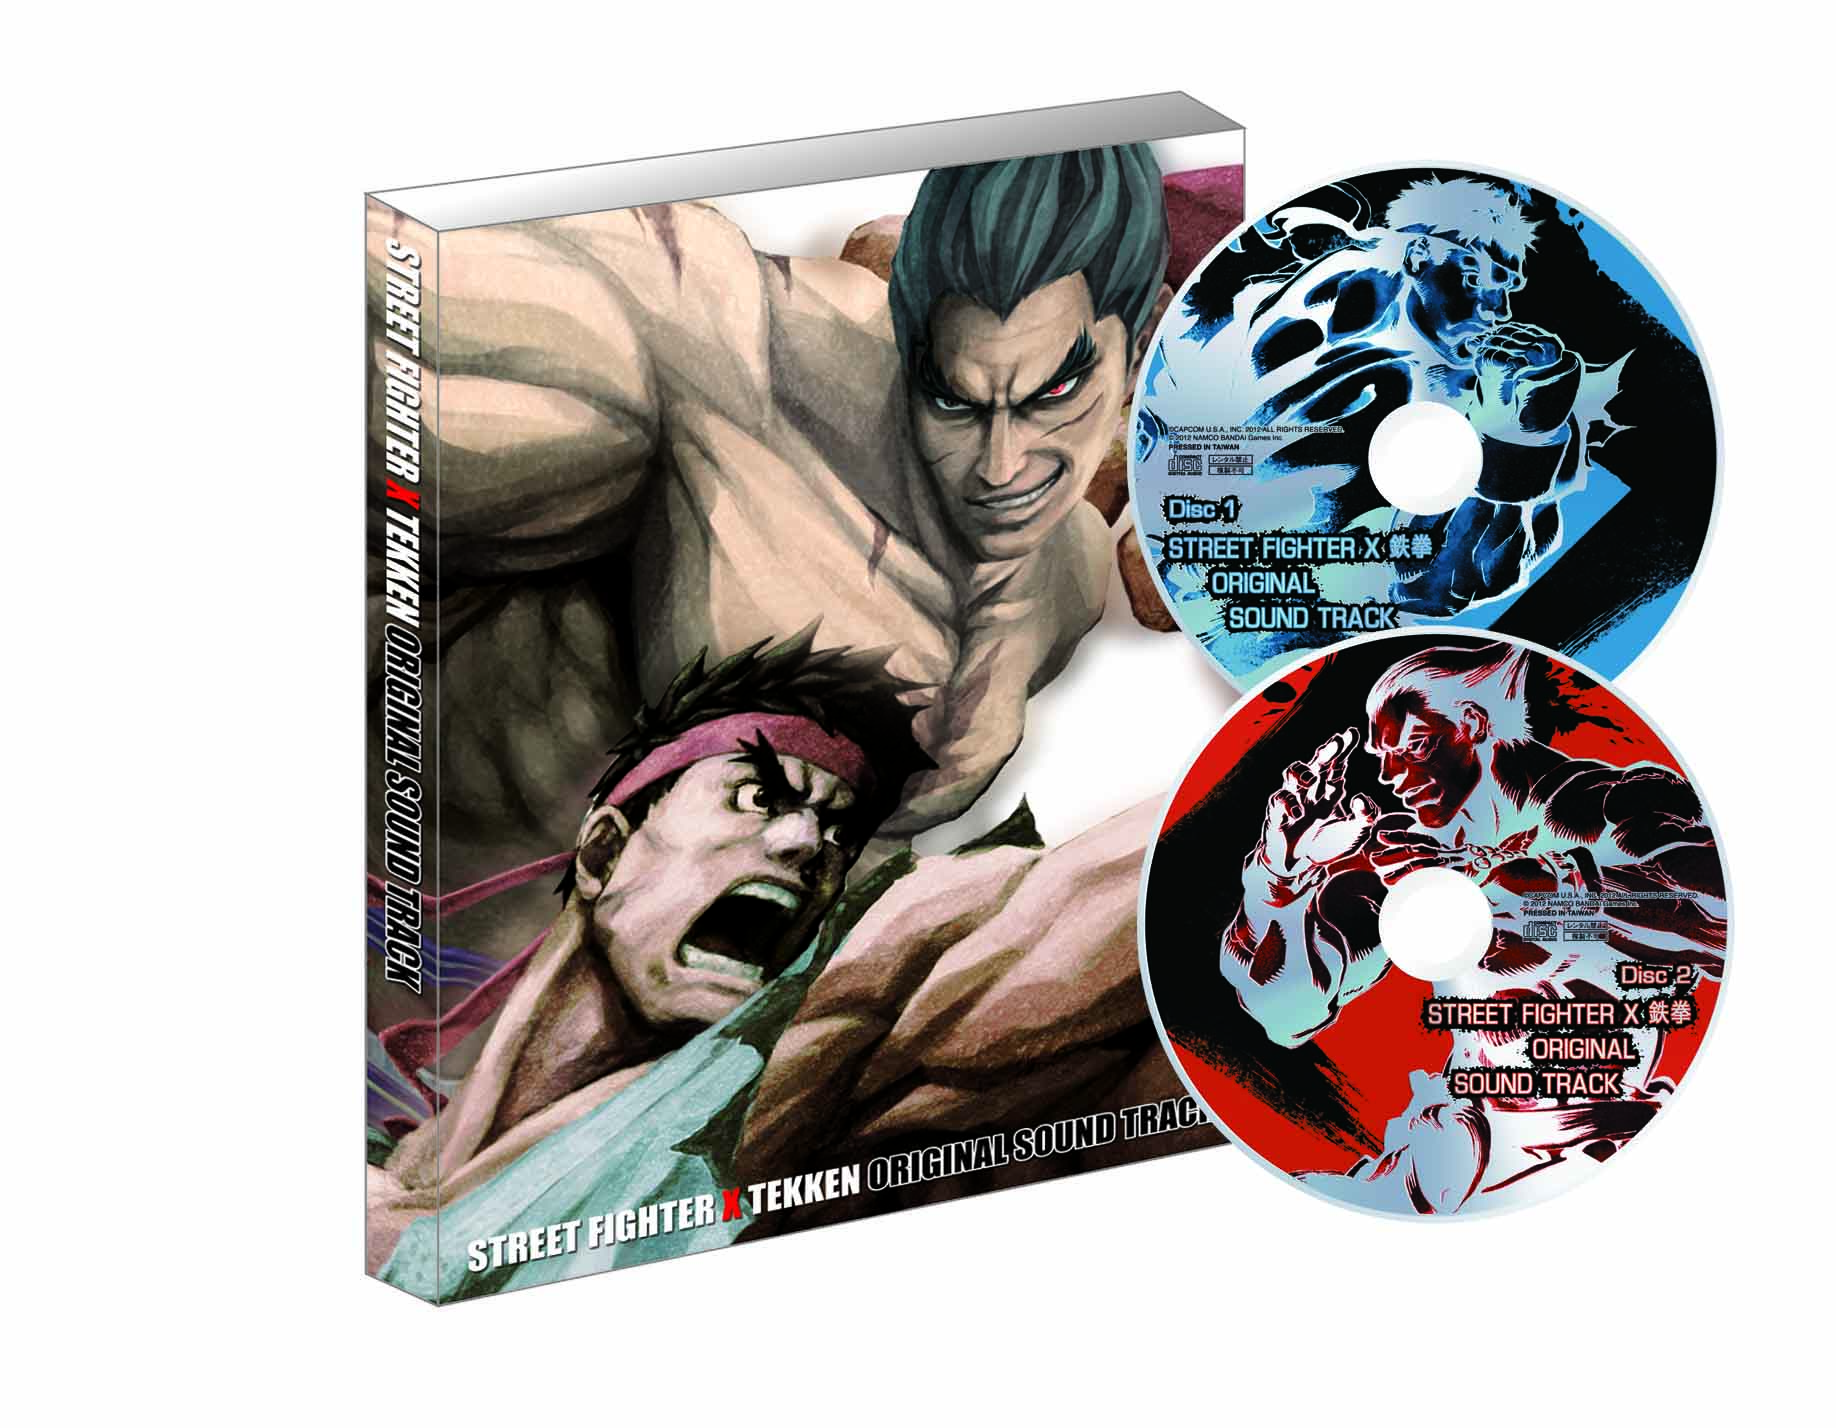 Street Fighter X Tekken PS3 game and game bundles to be released in